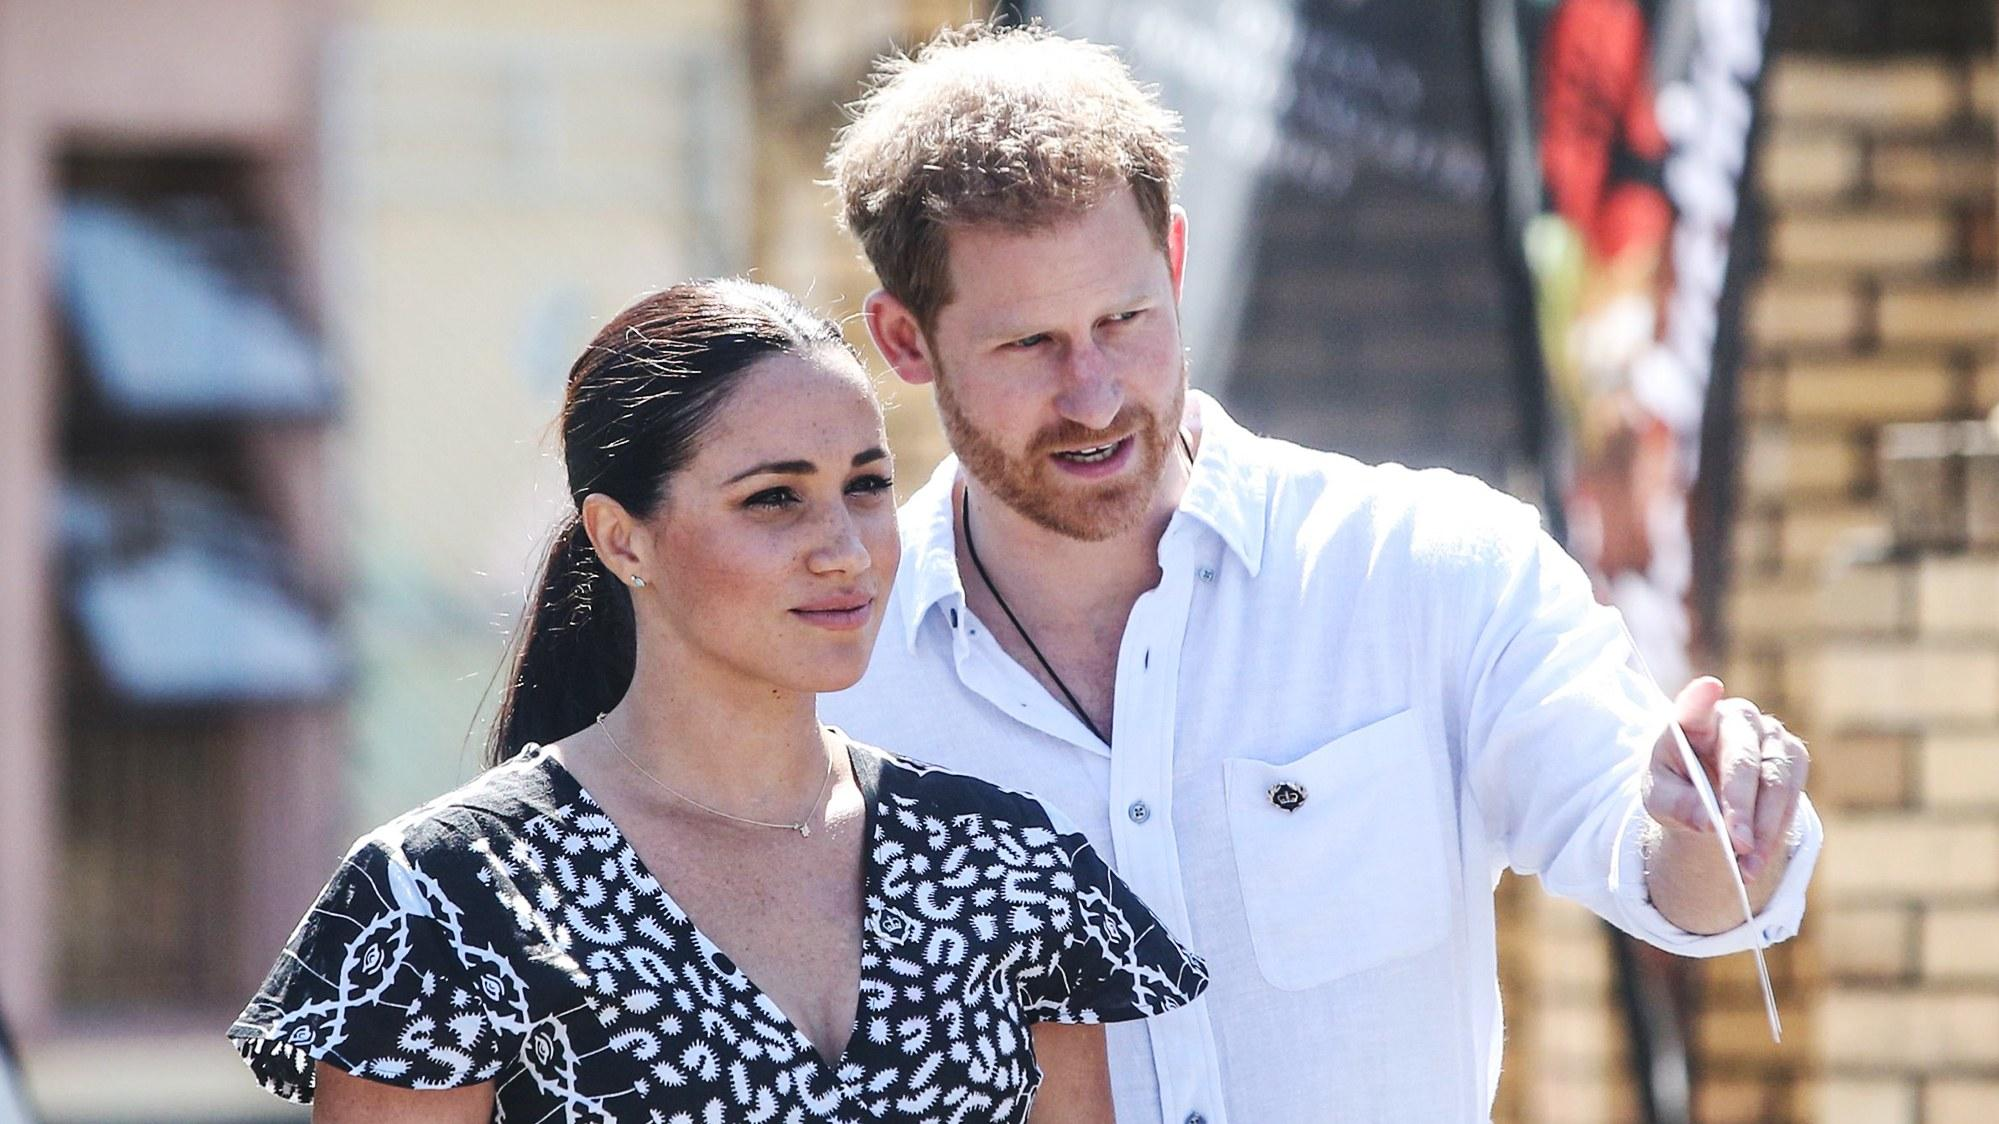 Prince Harry Is Not Happy With How The Press Is Treating Meghan Markle